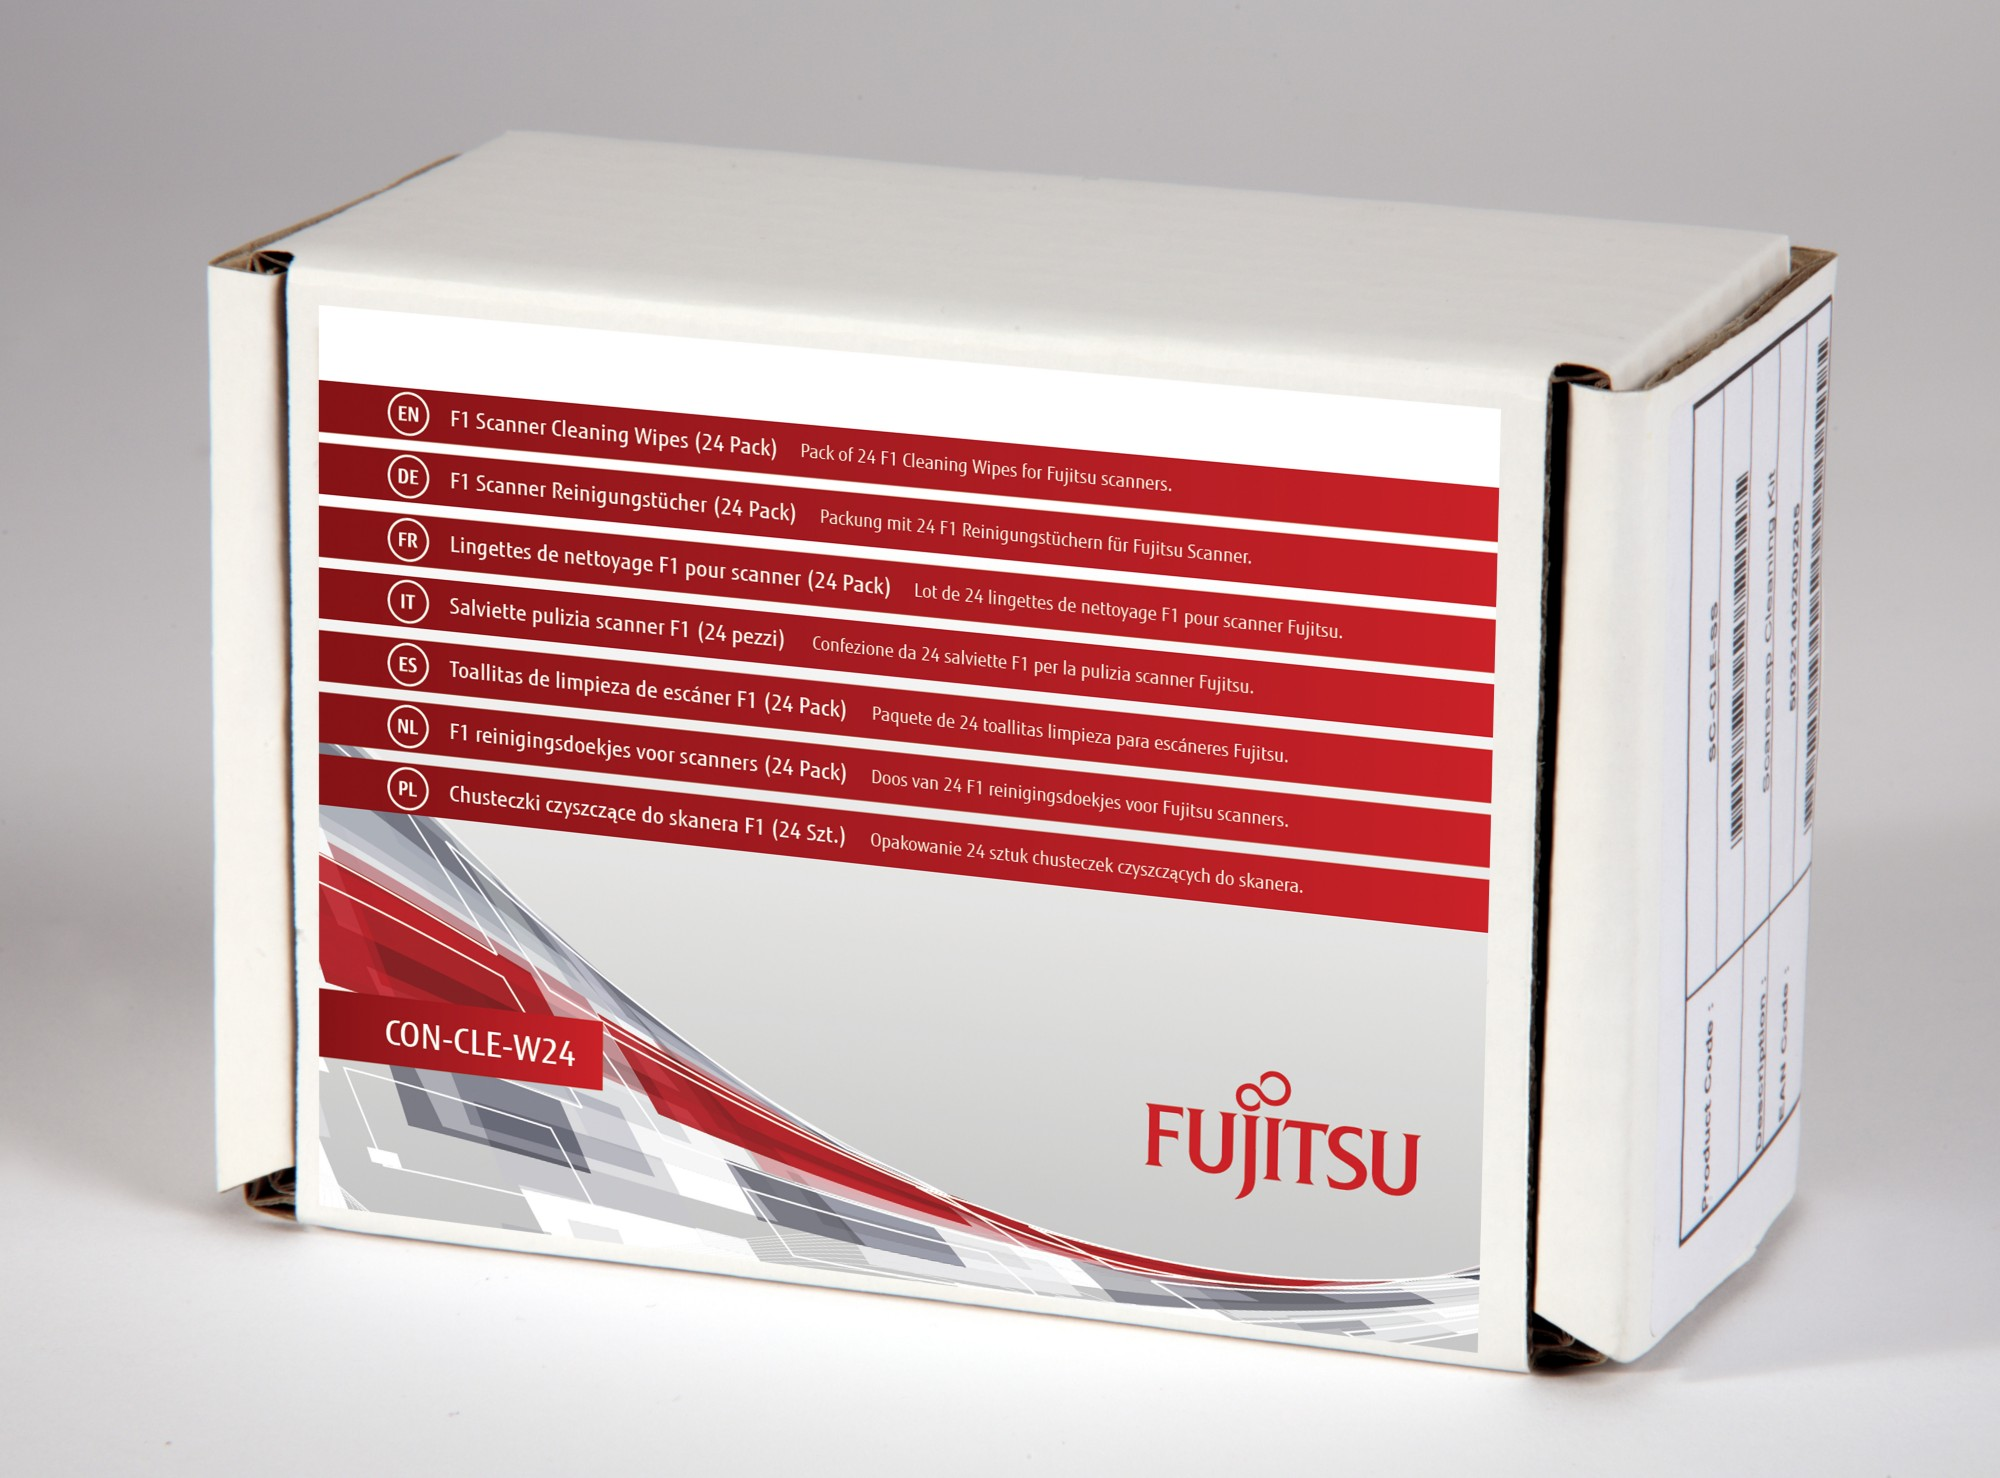 FUJITSU CON-CLE-W24 F1 SCANNER CLEANING WIPES (24 PACK)